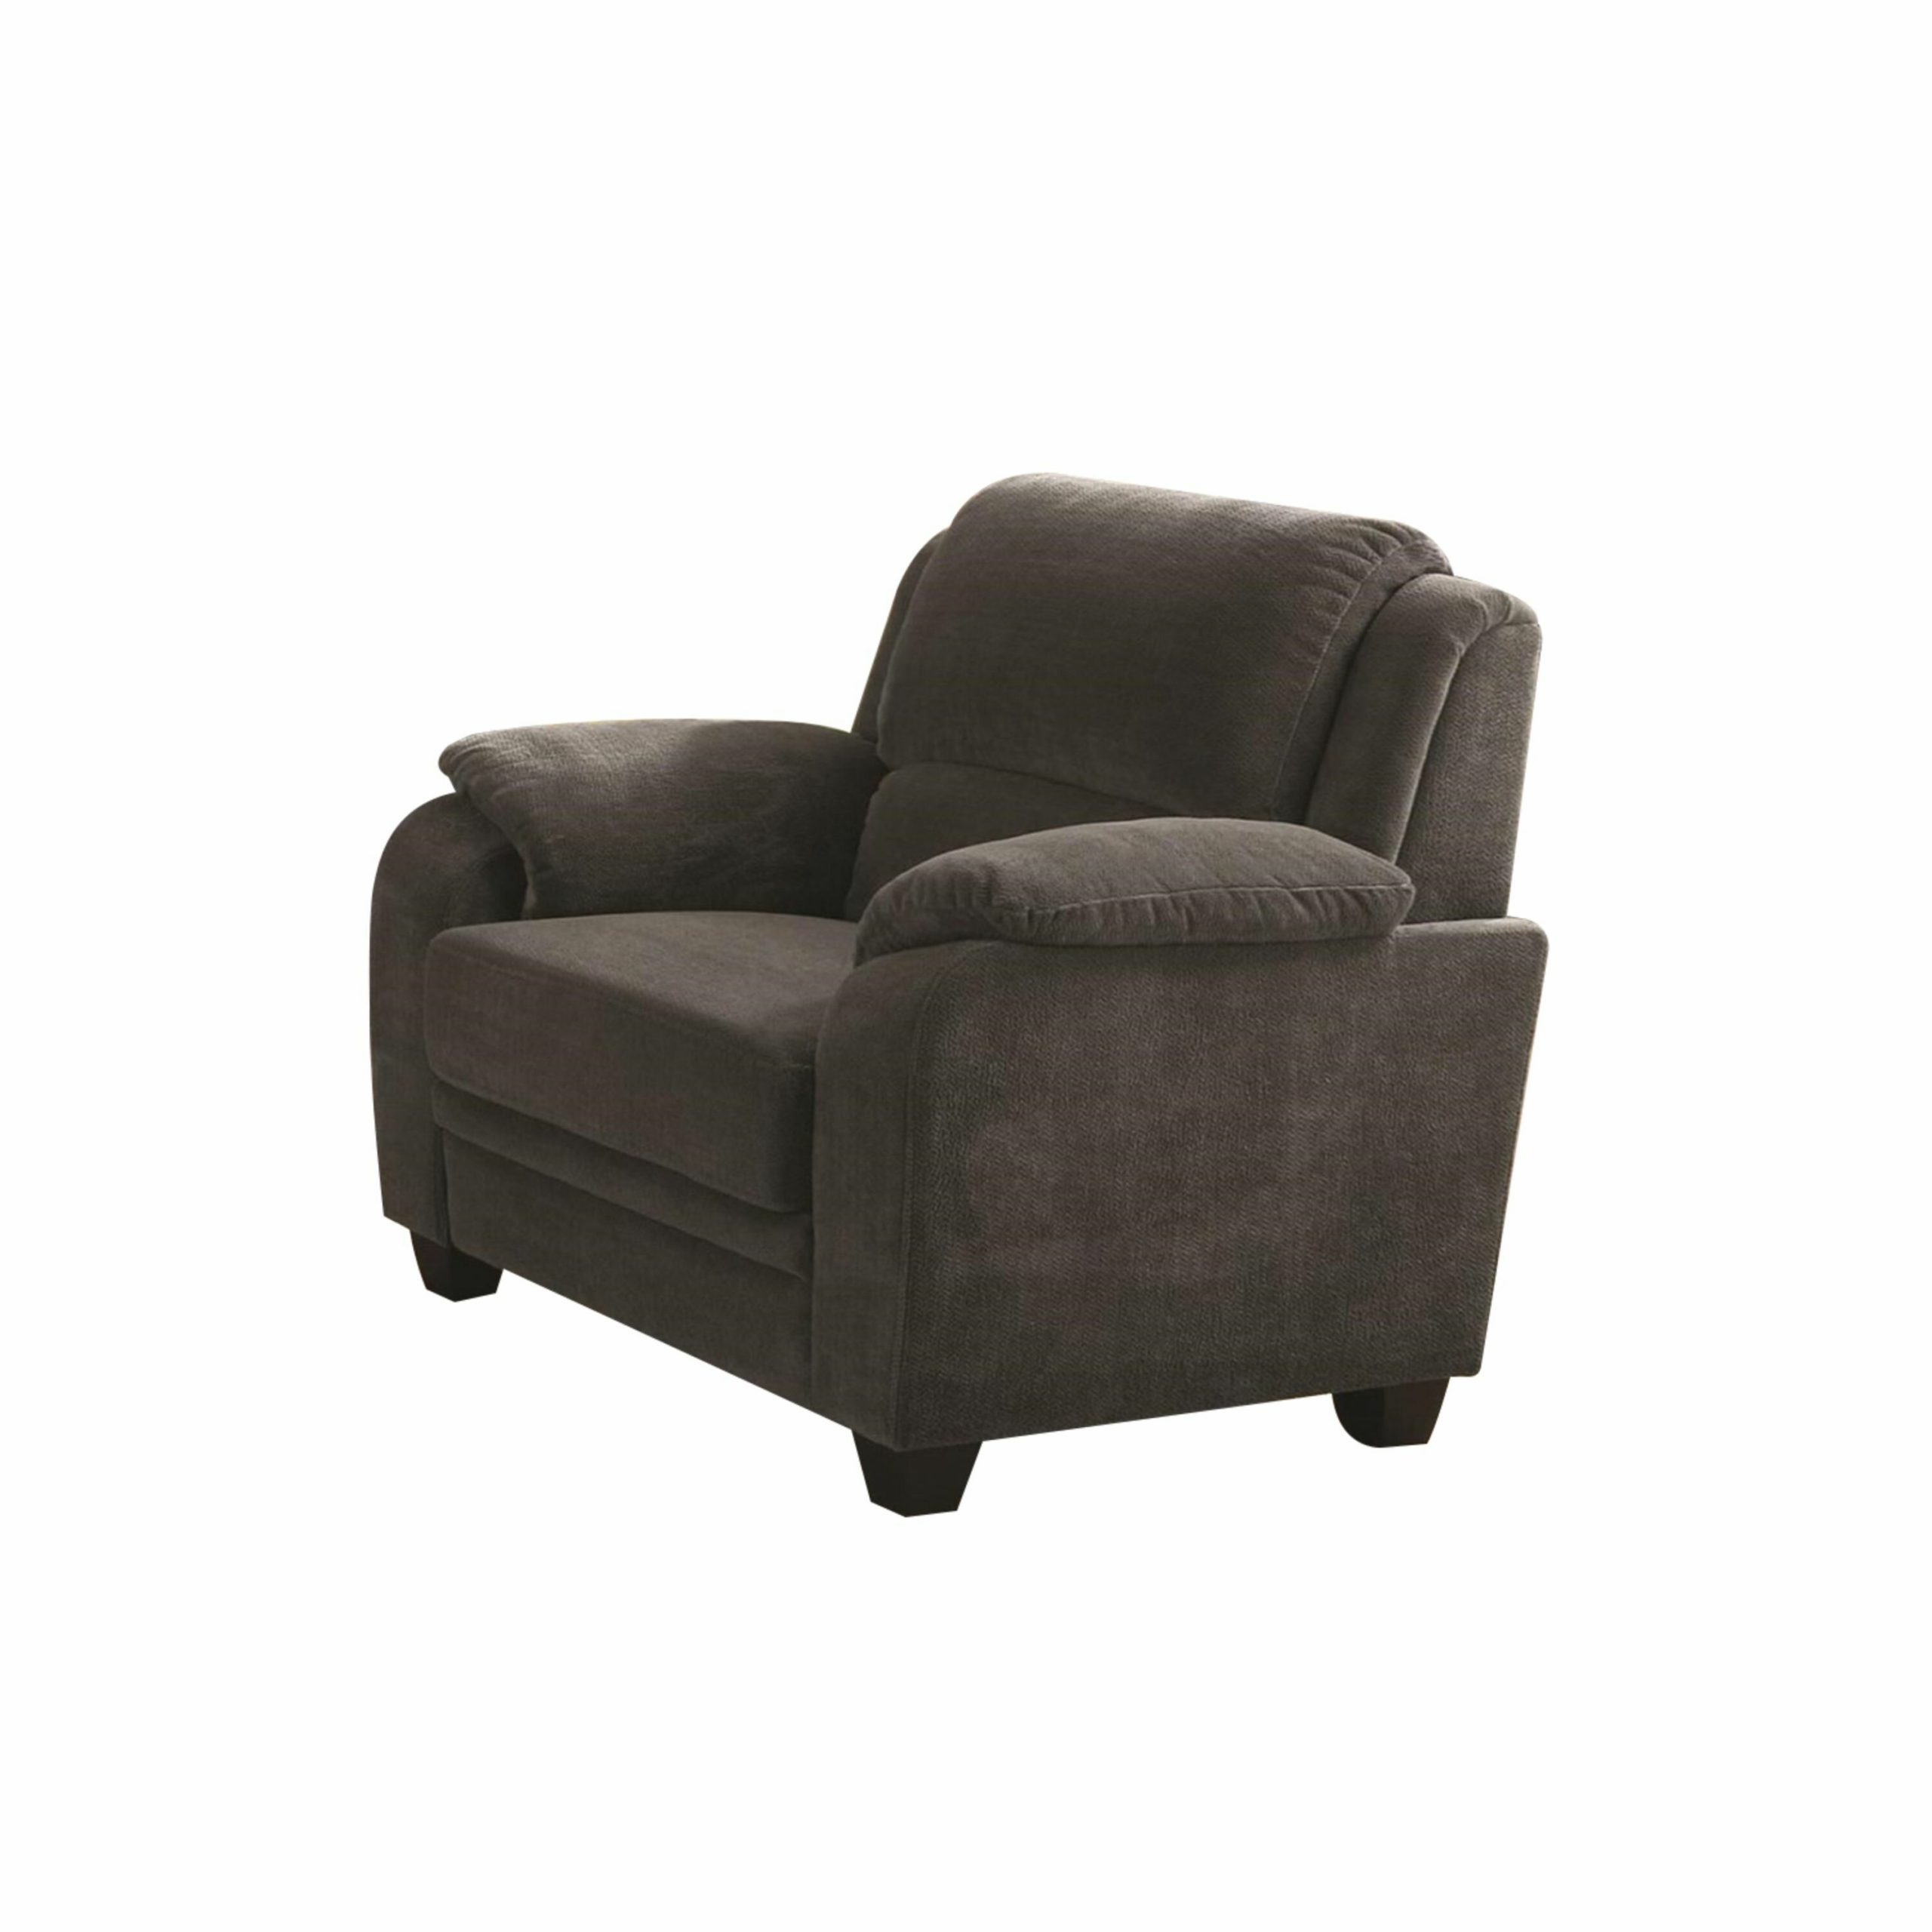 Mounce Armchair Regarding Oglesby Armchairs (View 4 of 15)